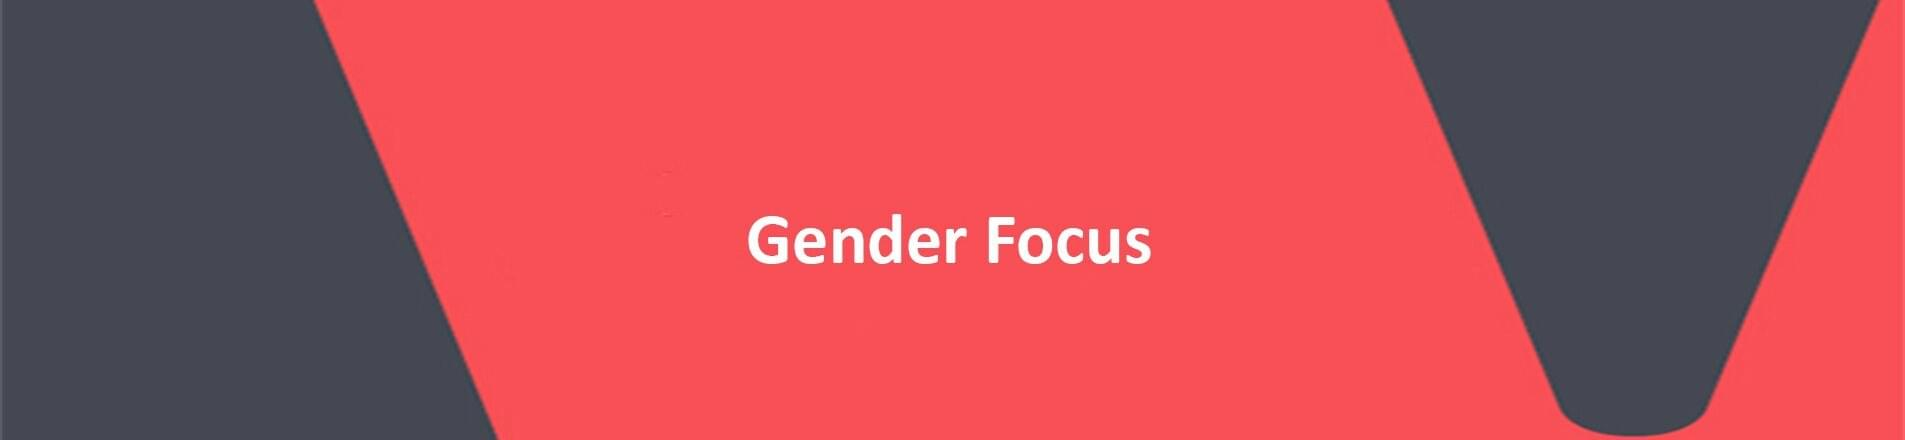 Gender Focus on red VERCIDA background